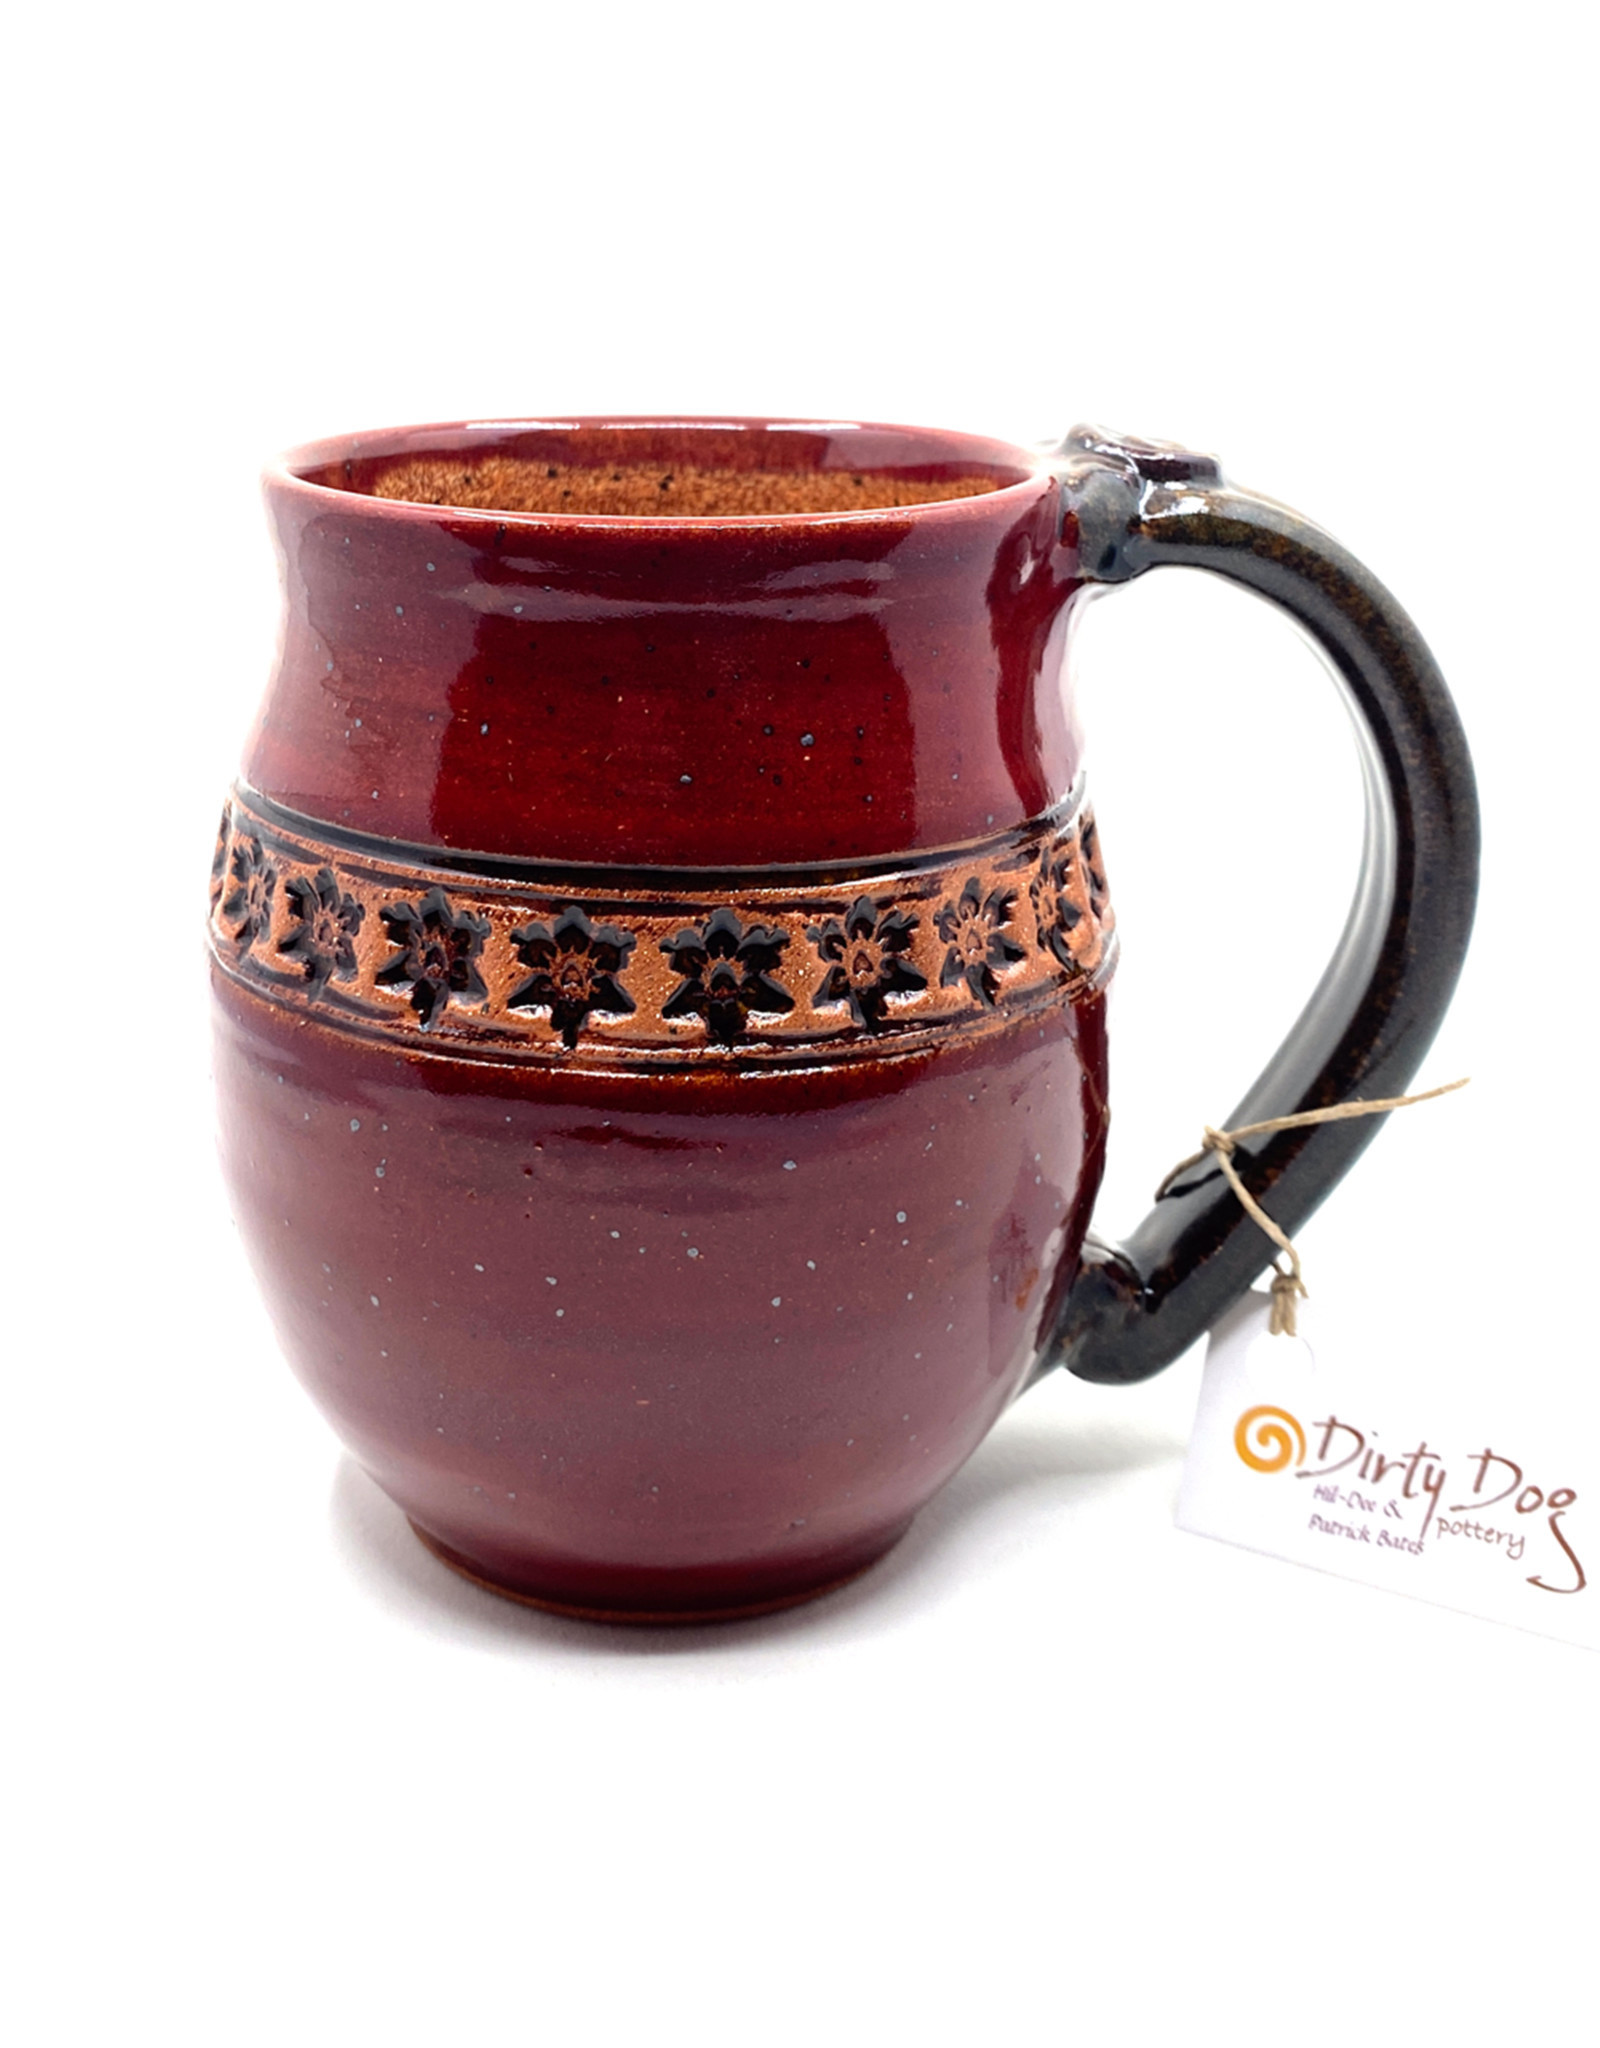 DIRTY DOG POTTERY MERLOT FLOWER CHAIN MUG